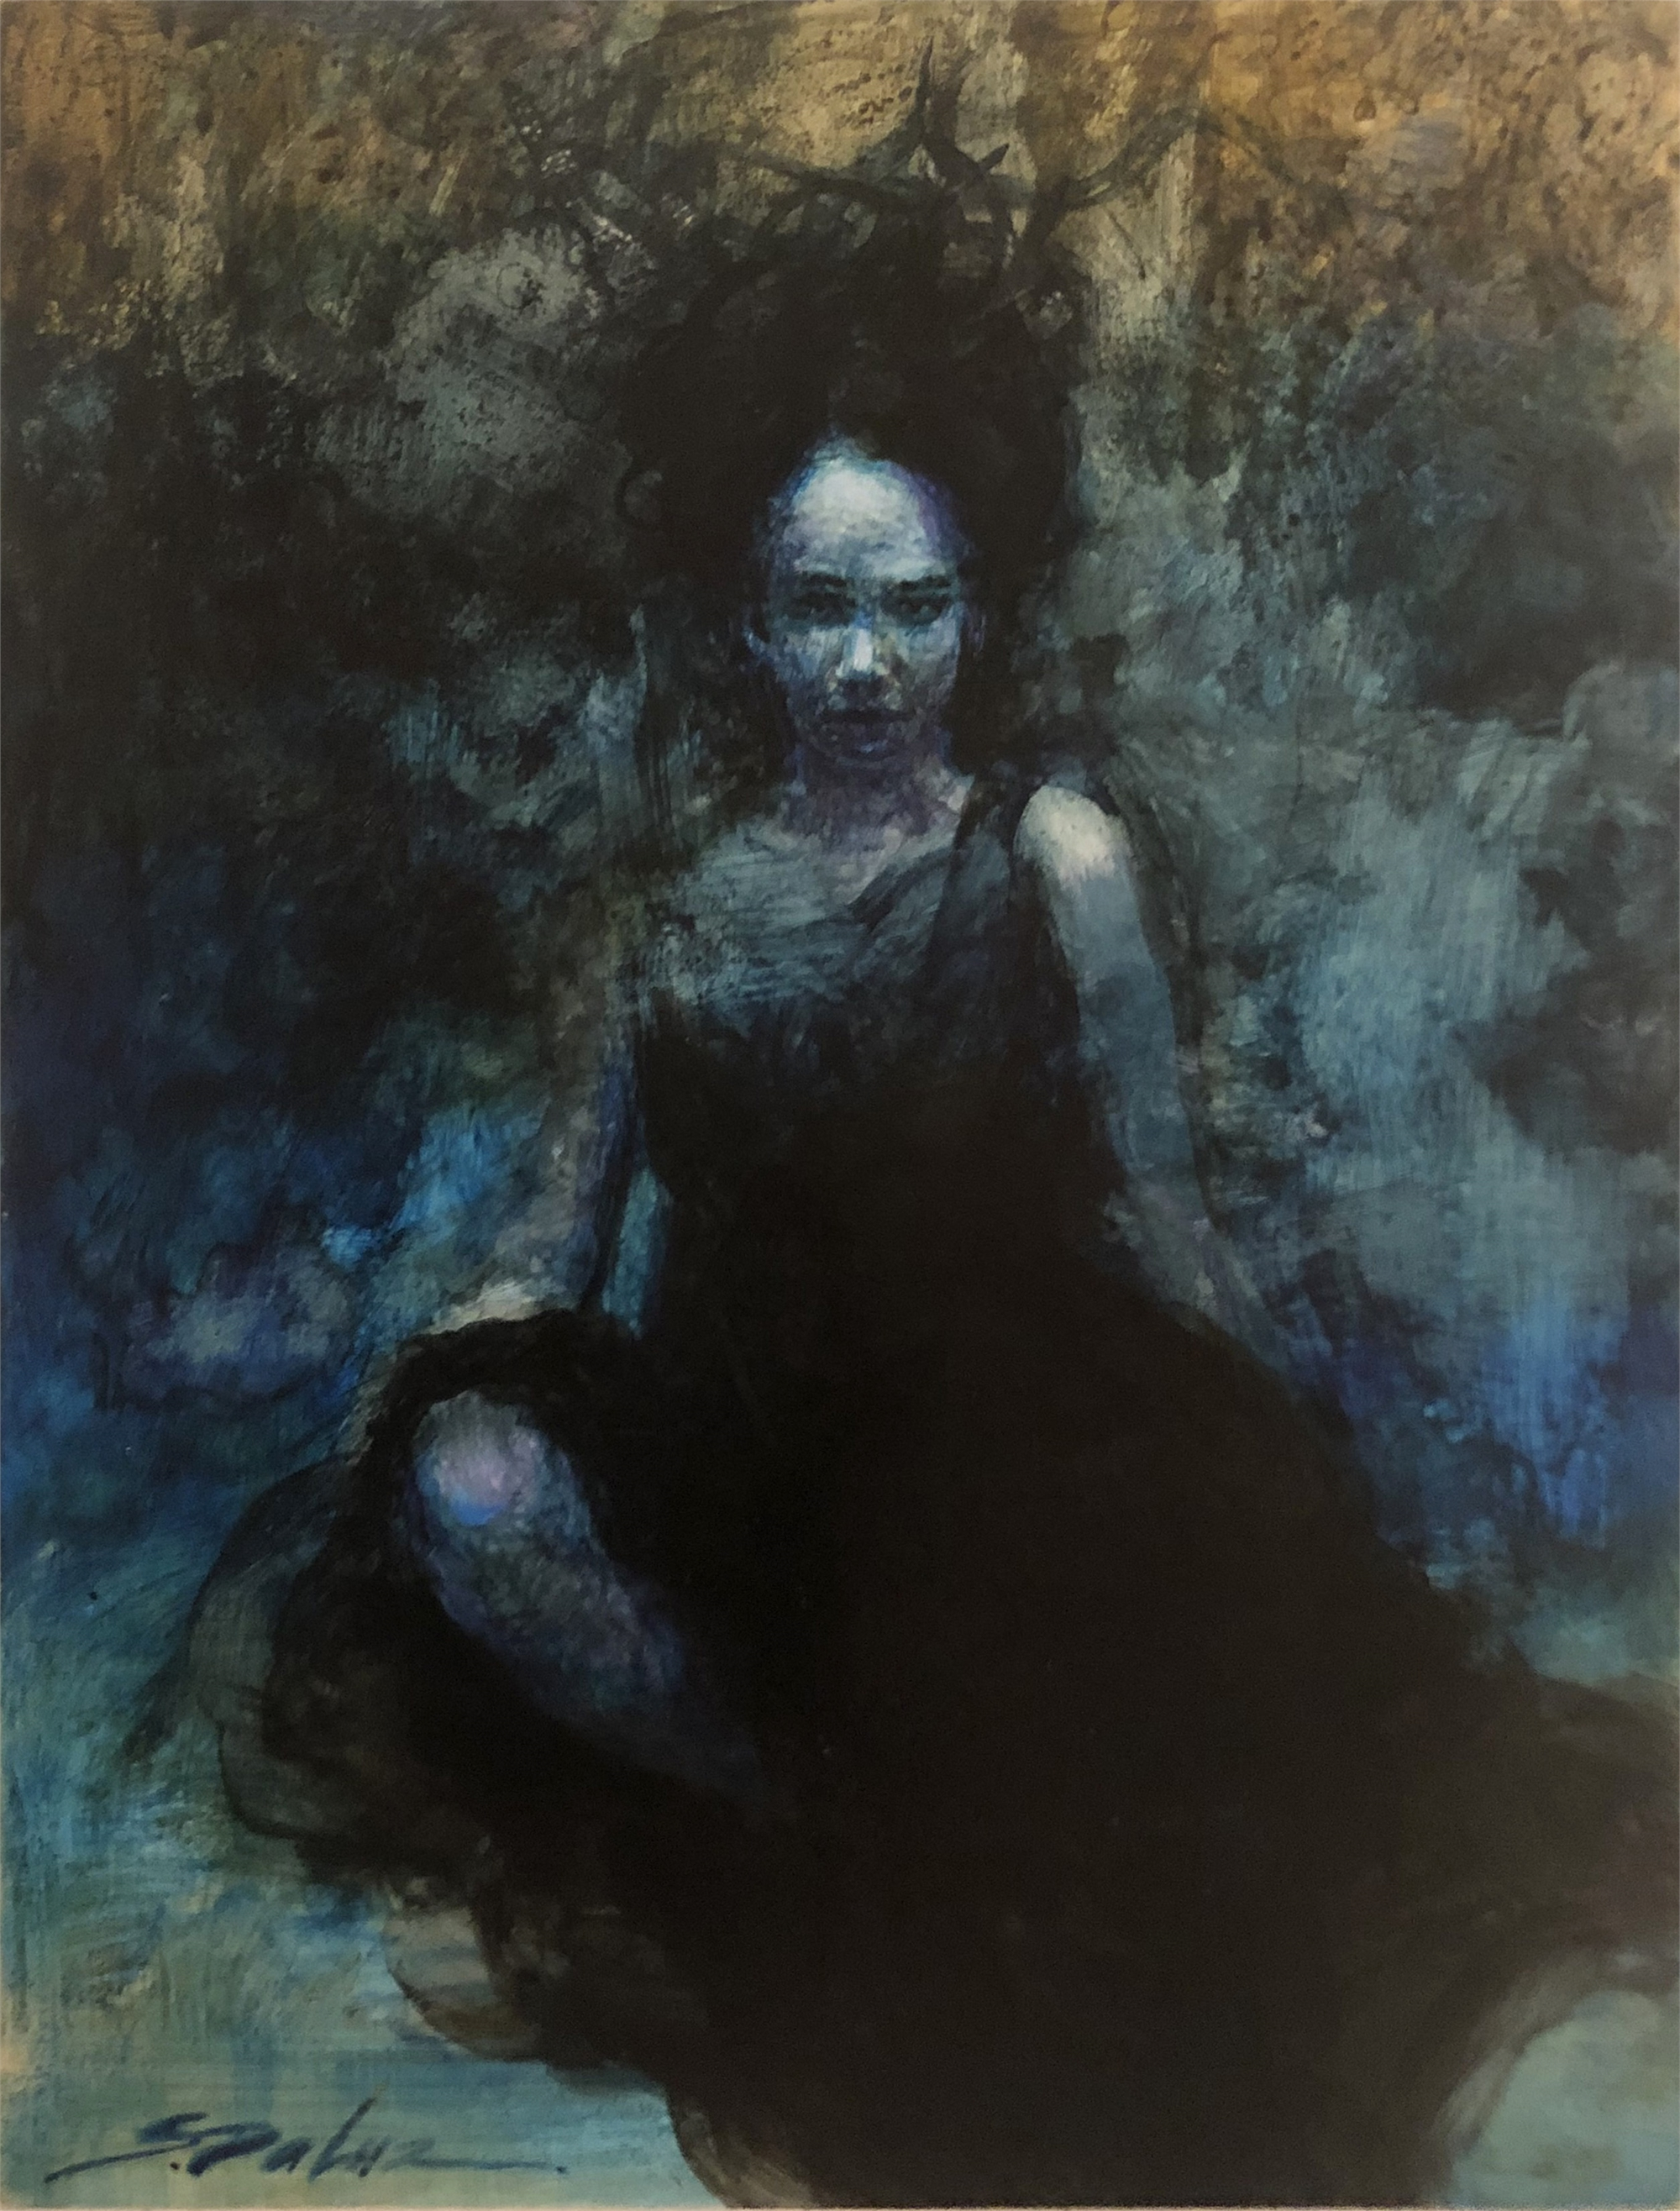 The Black Dress by Steven DaLuz